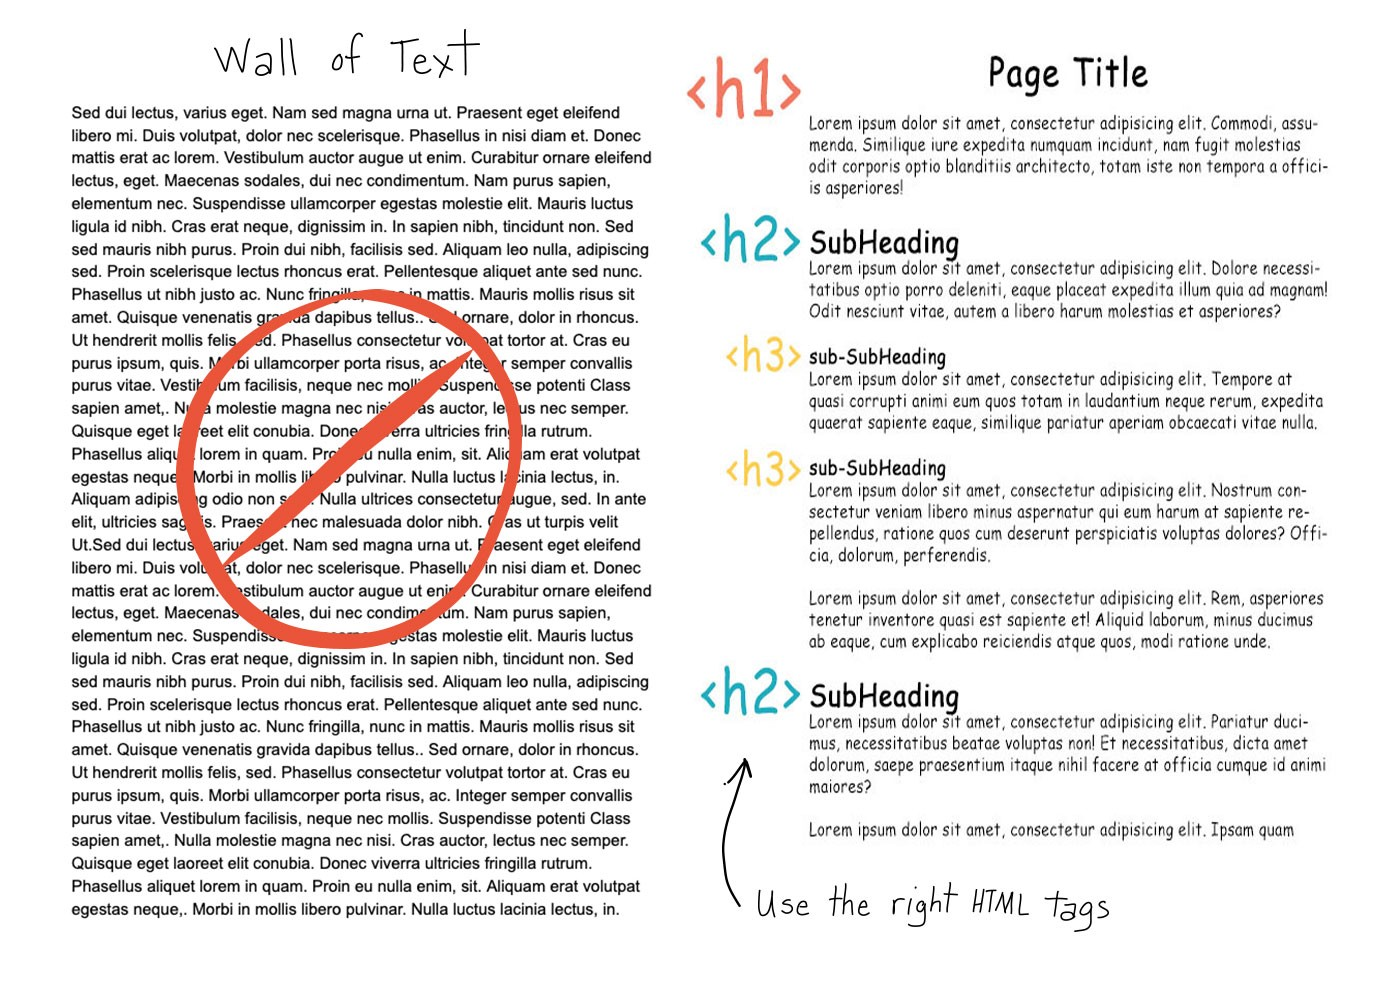 Hand-drawn illustration showing a 'wall of text' and properly organized written content